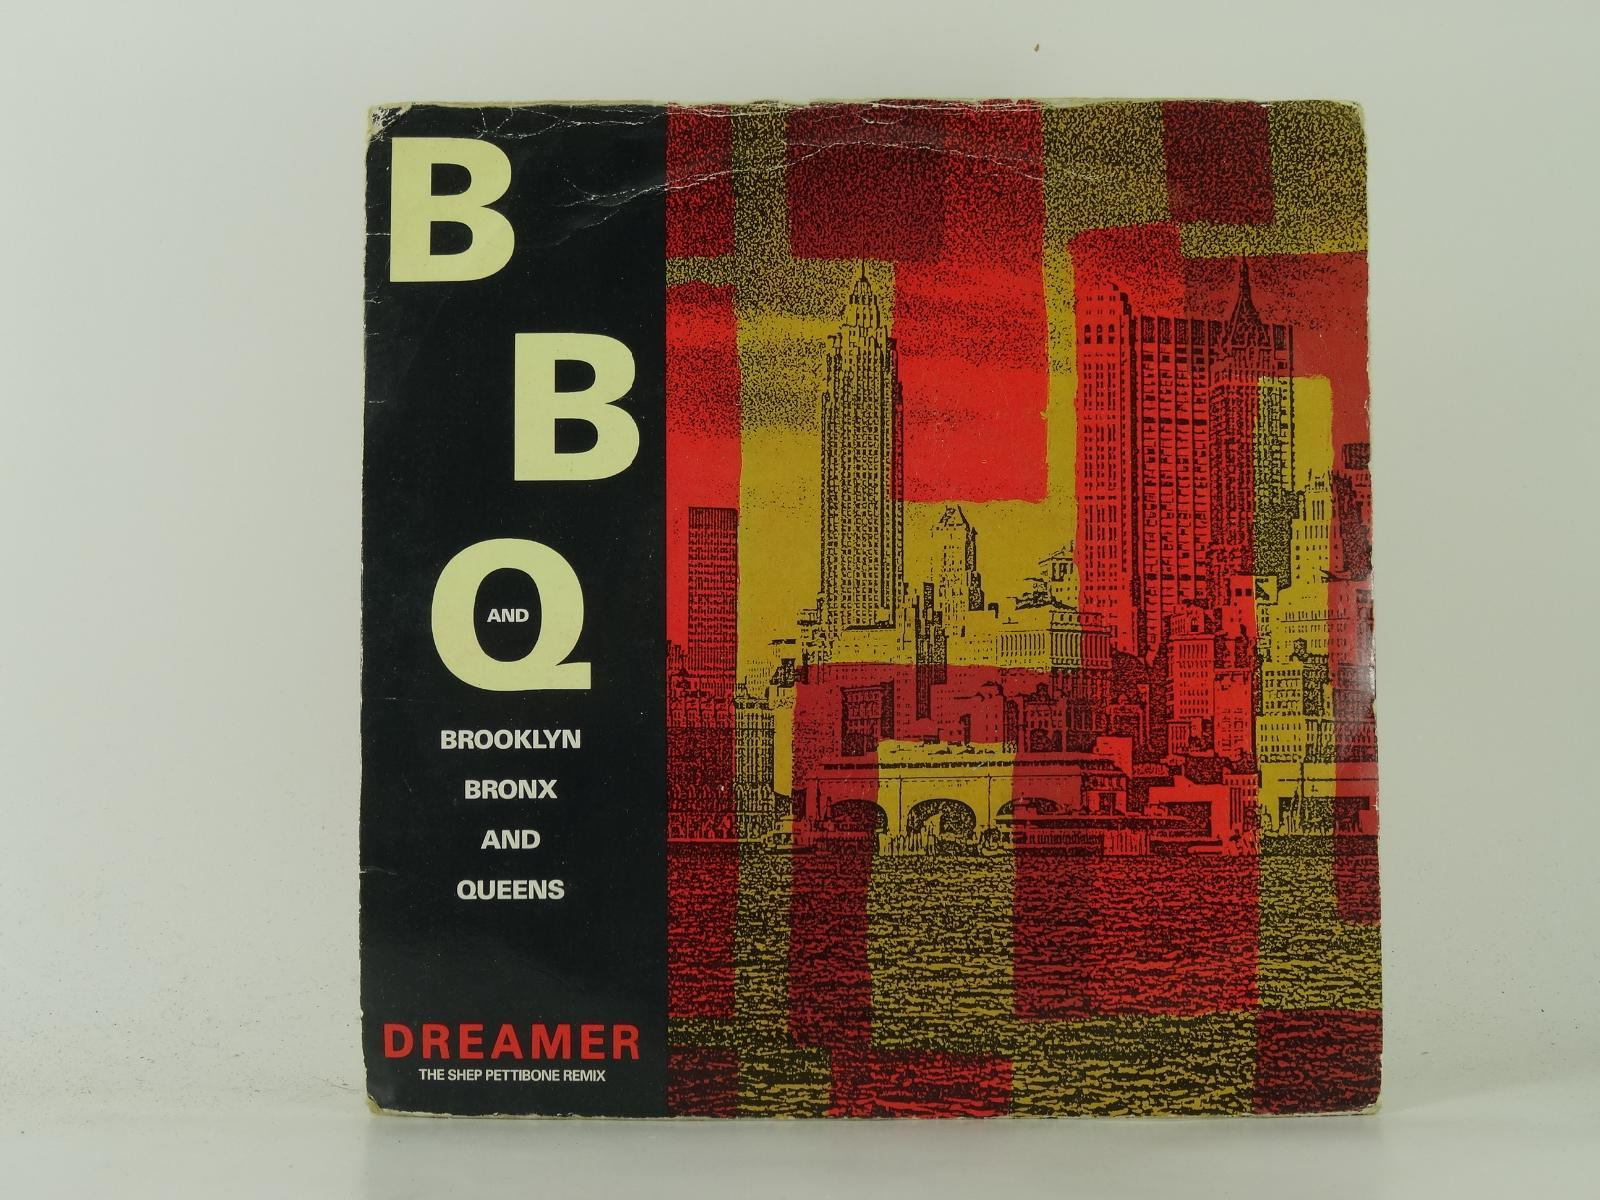 BROOKLYN-BRONX-AND-QUEENS-DREAMER-45-VG-VG-2-Track-7-034-Single-Picture-Sleev